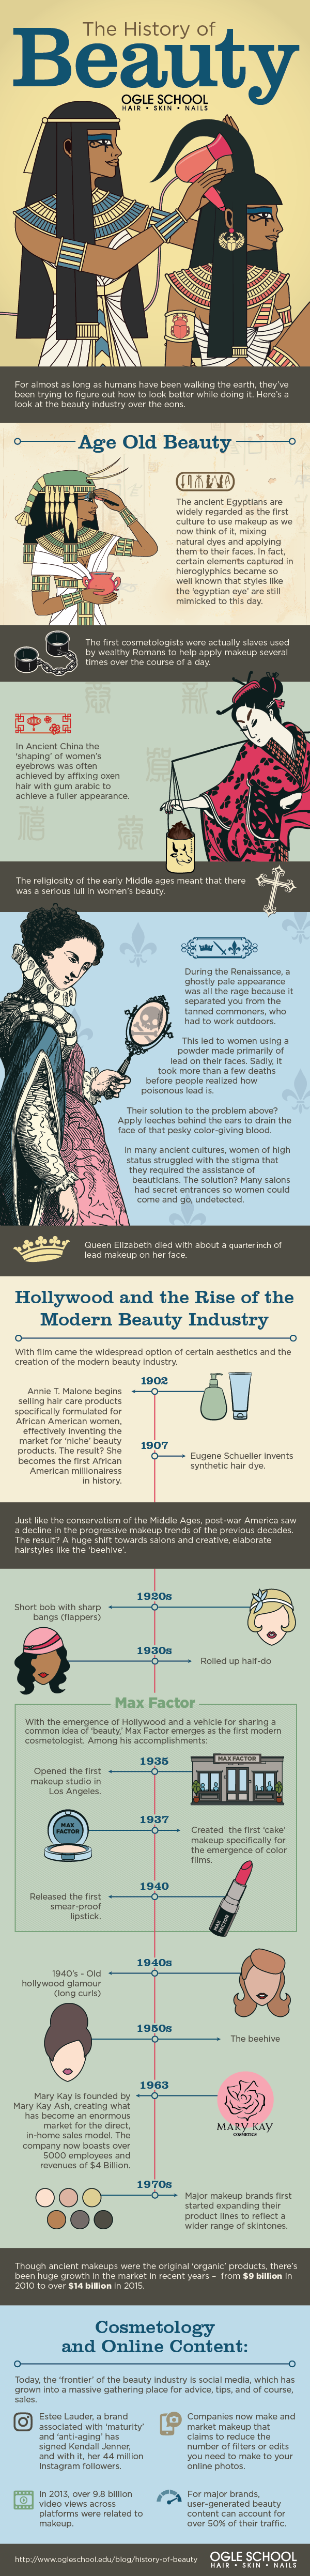 The-History-of-Beauty-infographic-plaza